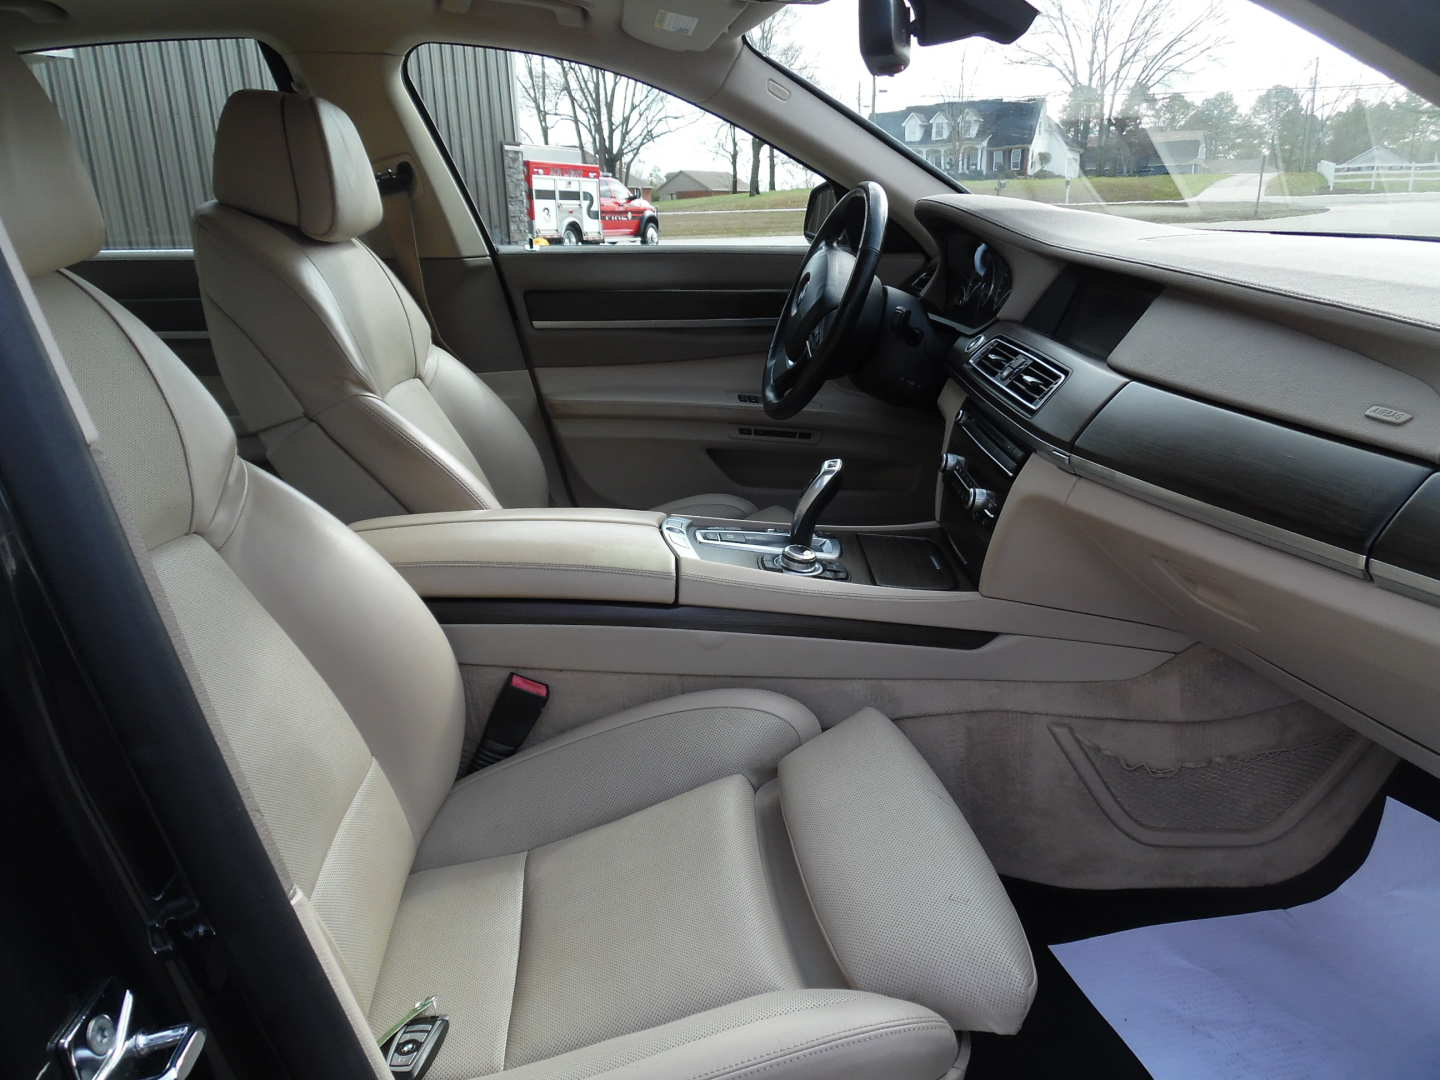 7th Image of a 2009 BMW 750IL